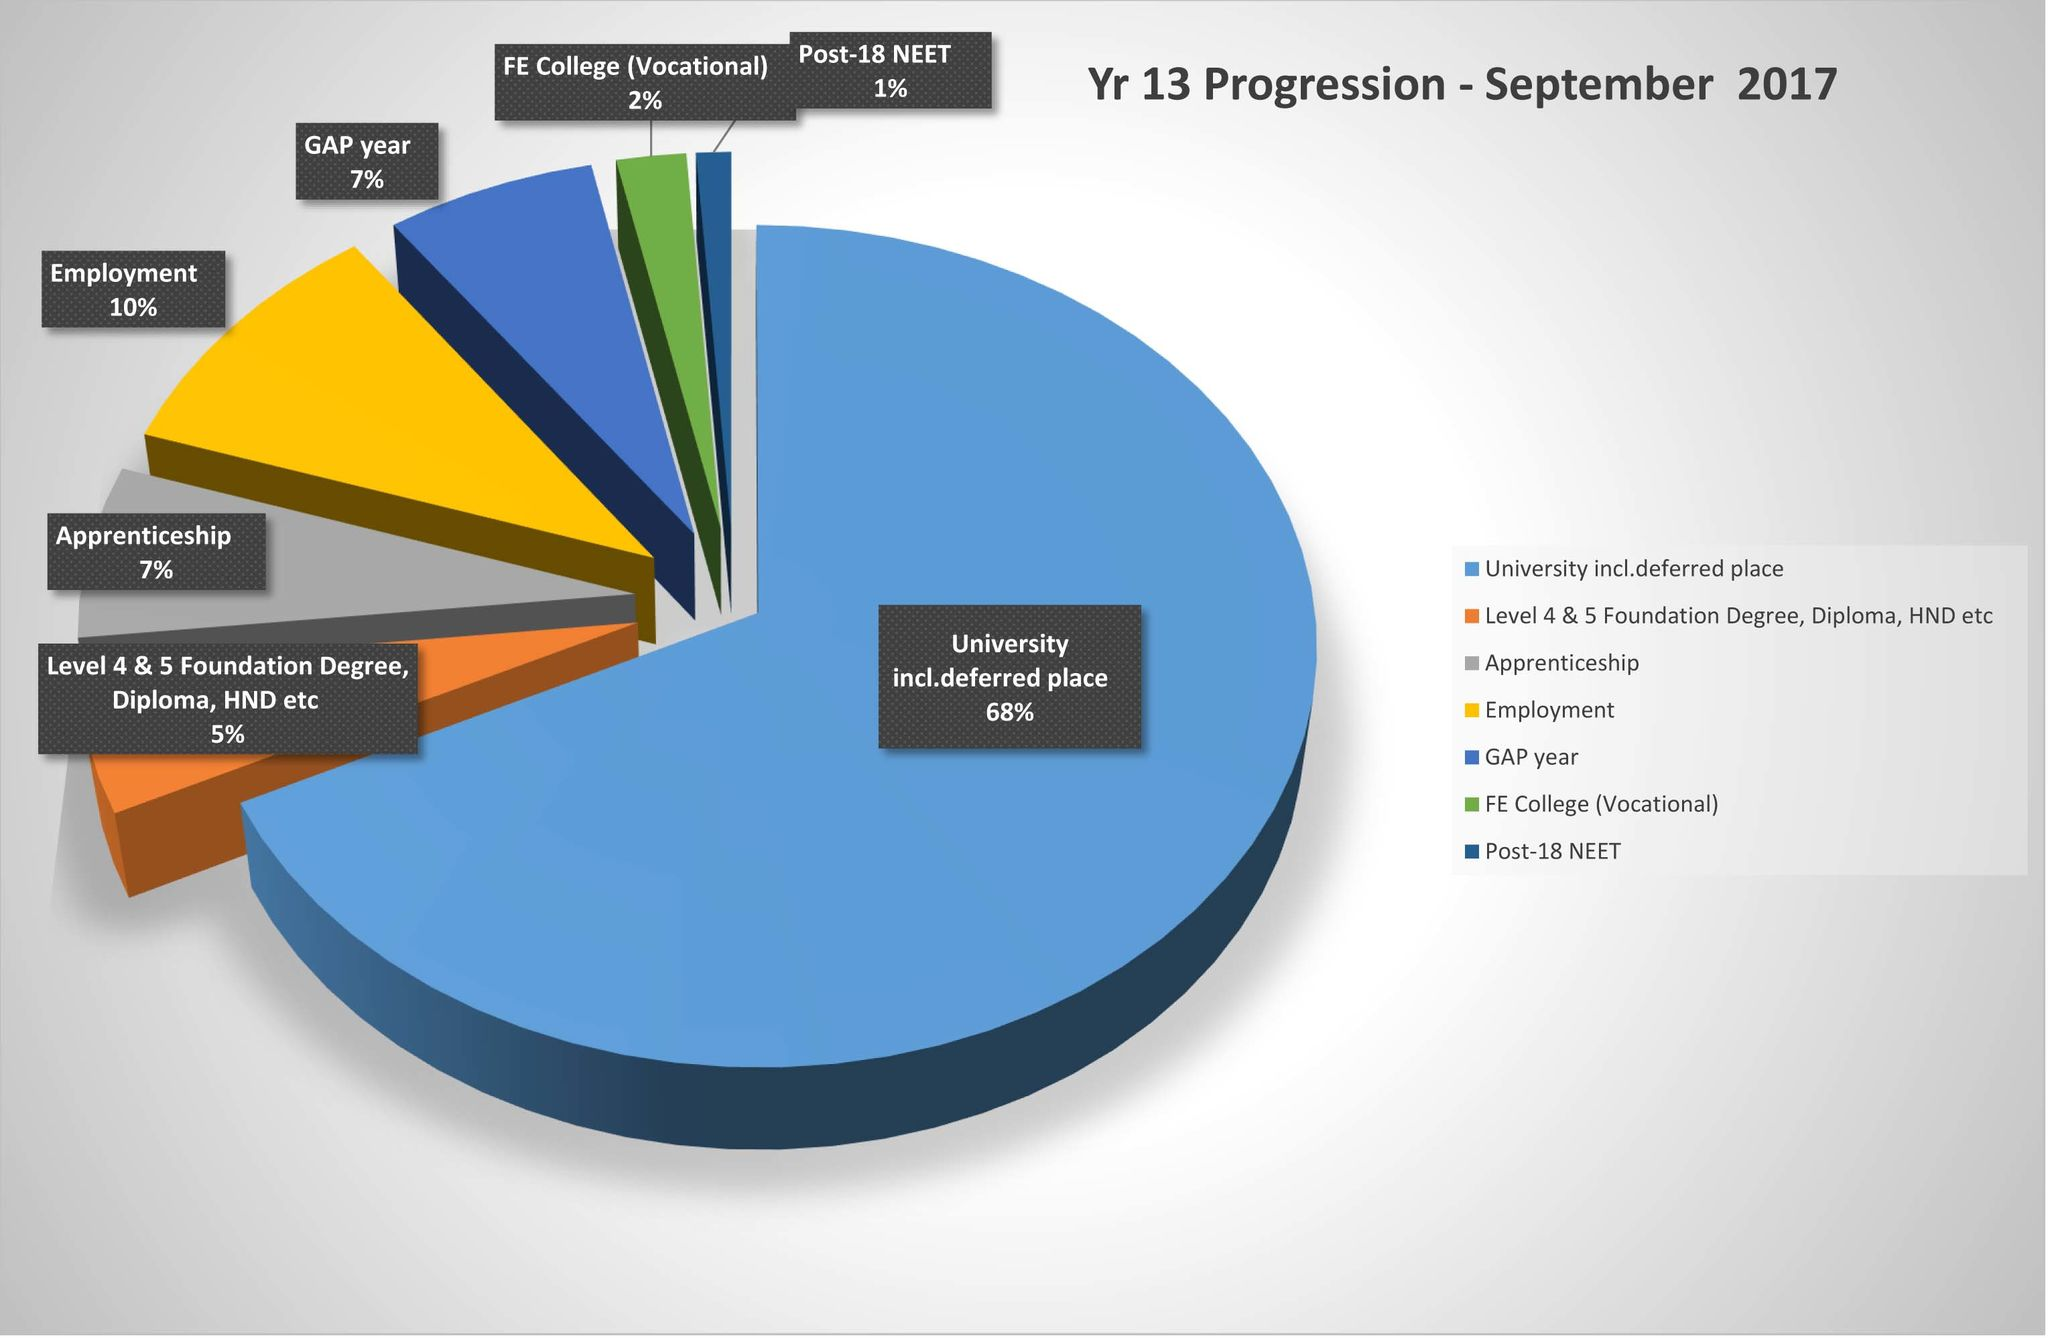 Yr 13 Progression data   Sept 2017